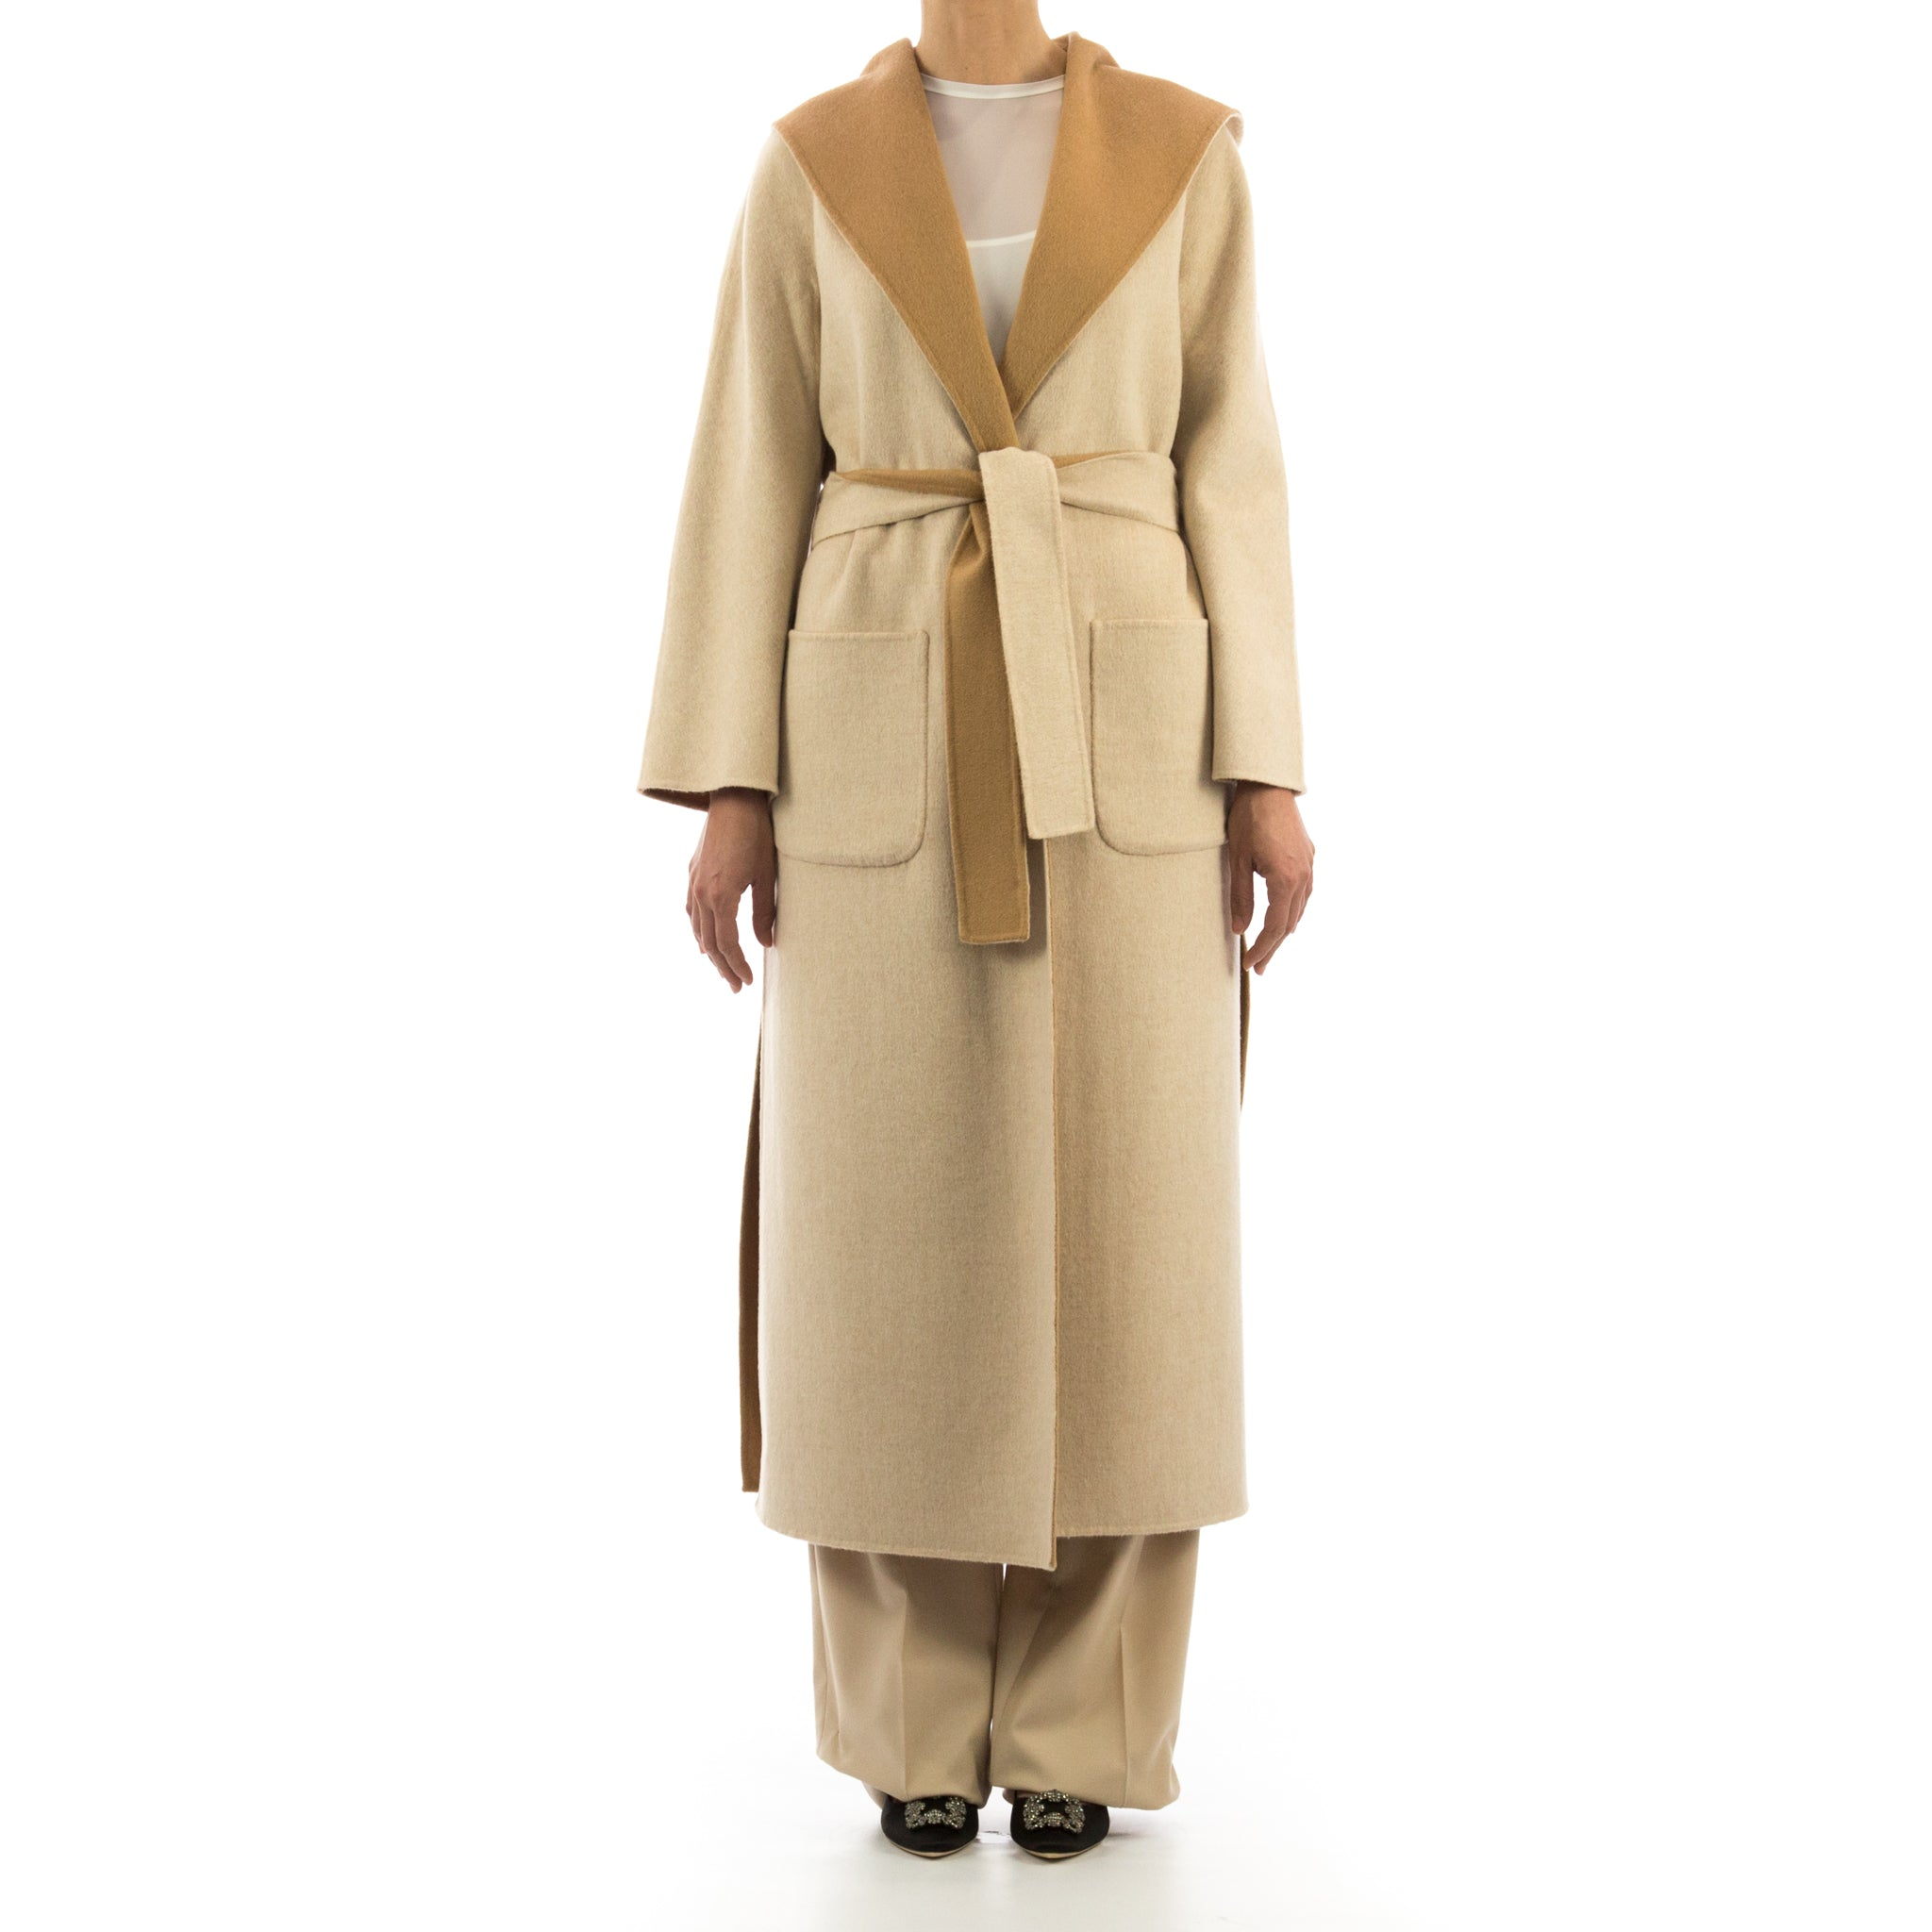 Reversible Wool Coat-HERESIS-SHOPATVOI.COM - Luxury Fashion Designer